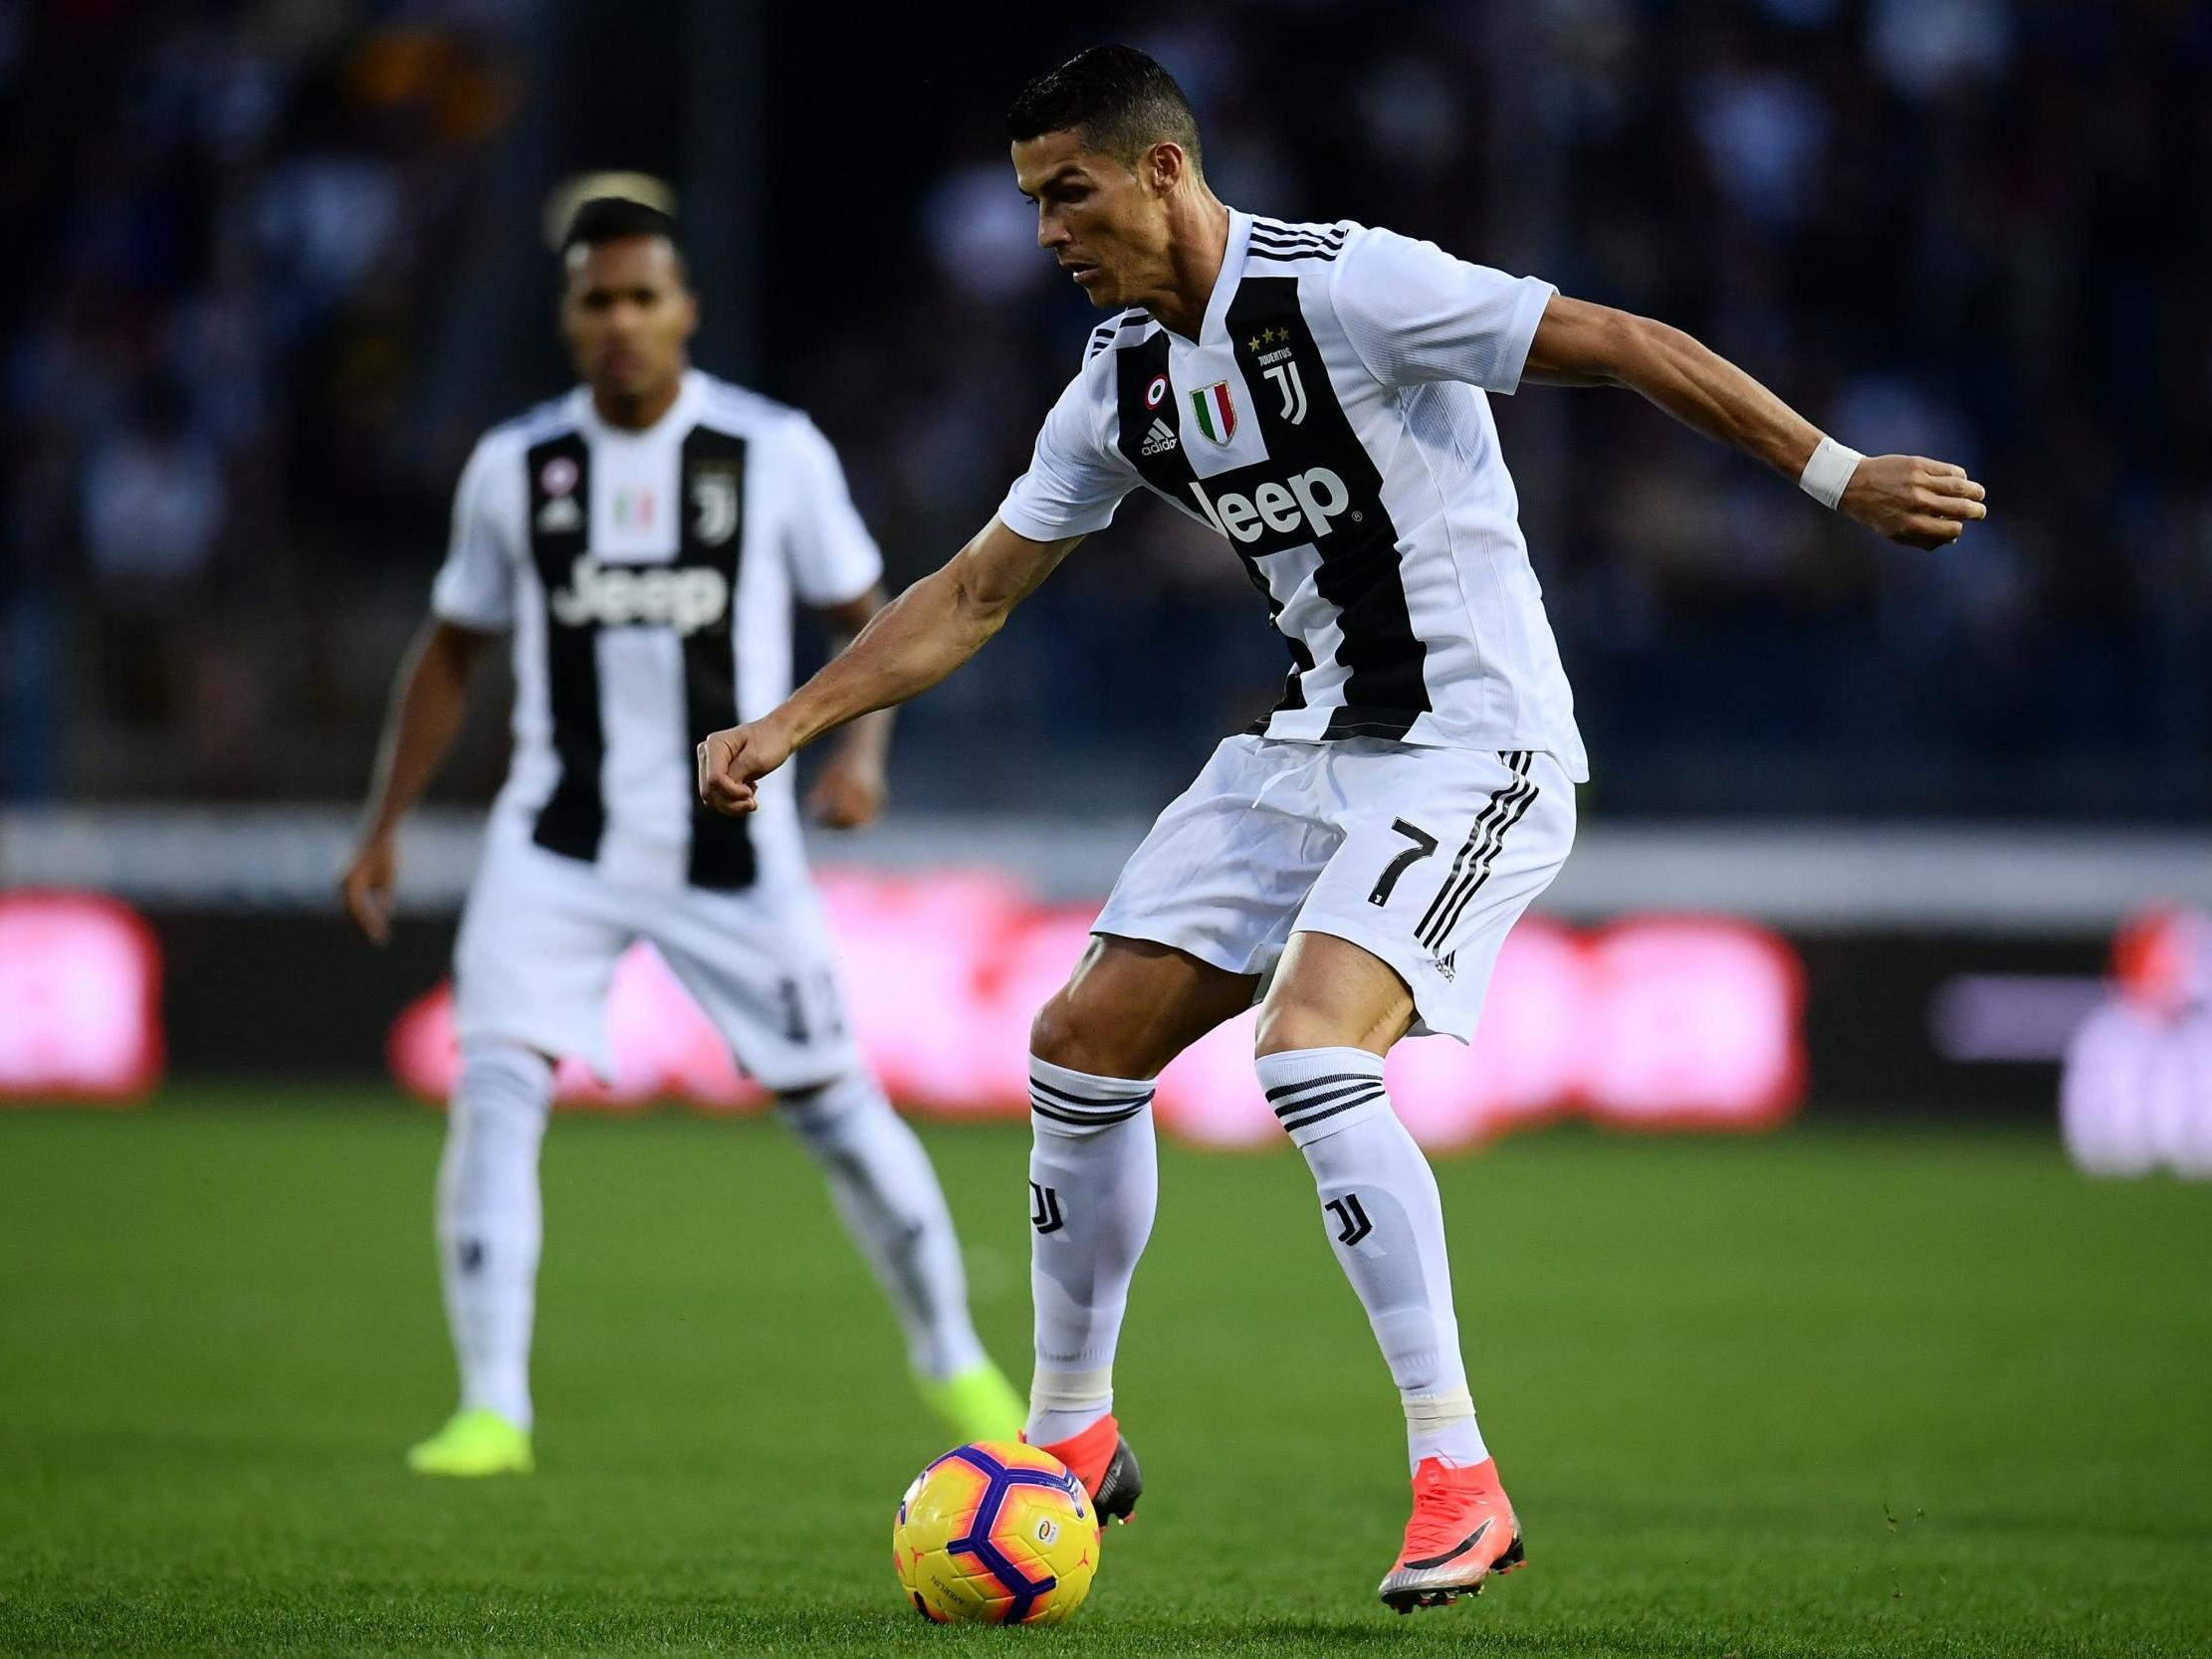 Empoli Vs Juventus Serie A Live Latest Updates As Cristiano Ronaldo Scores Two Goals The Independent The Independent